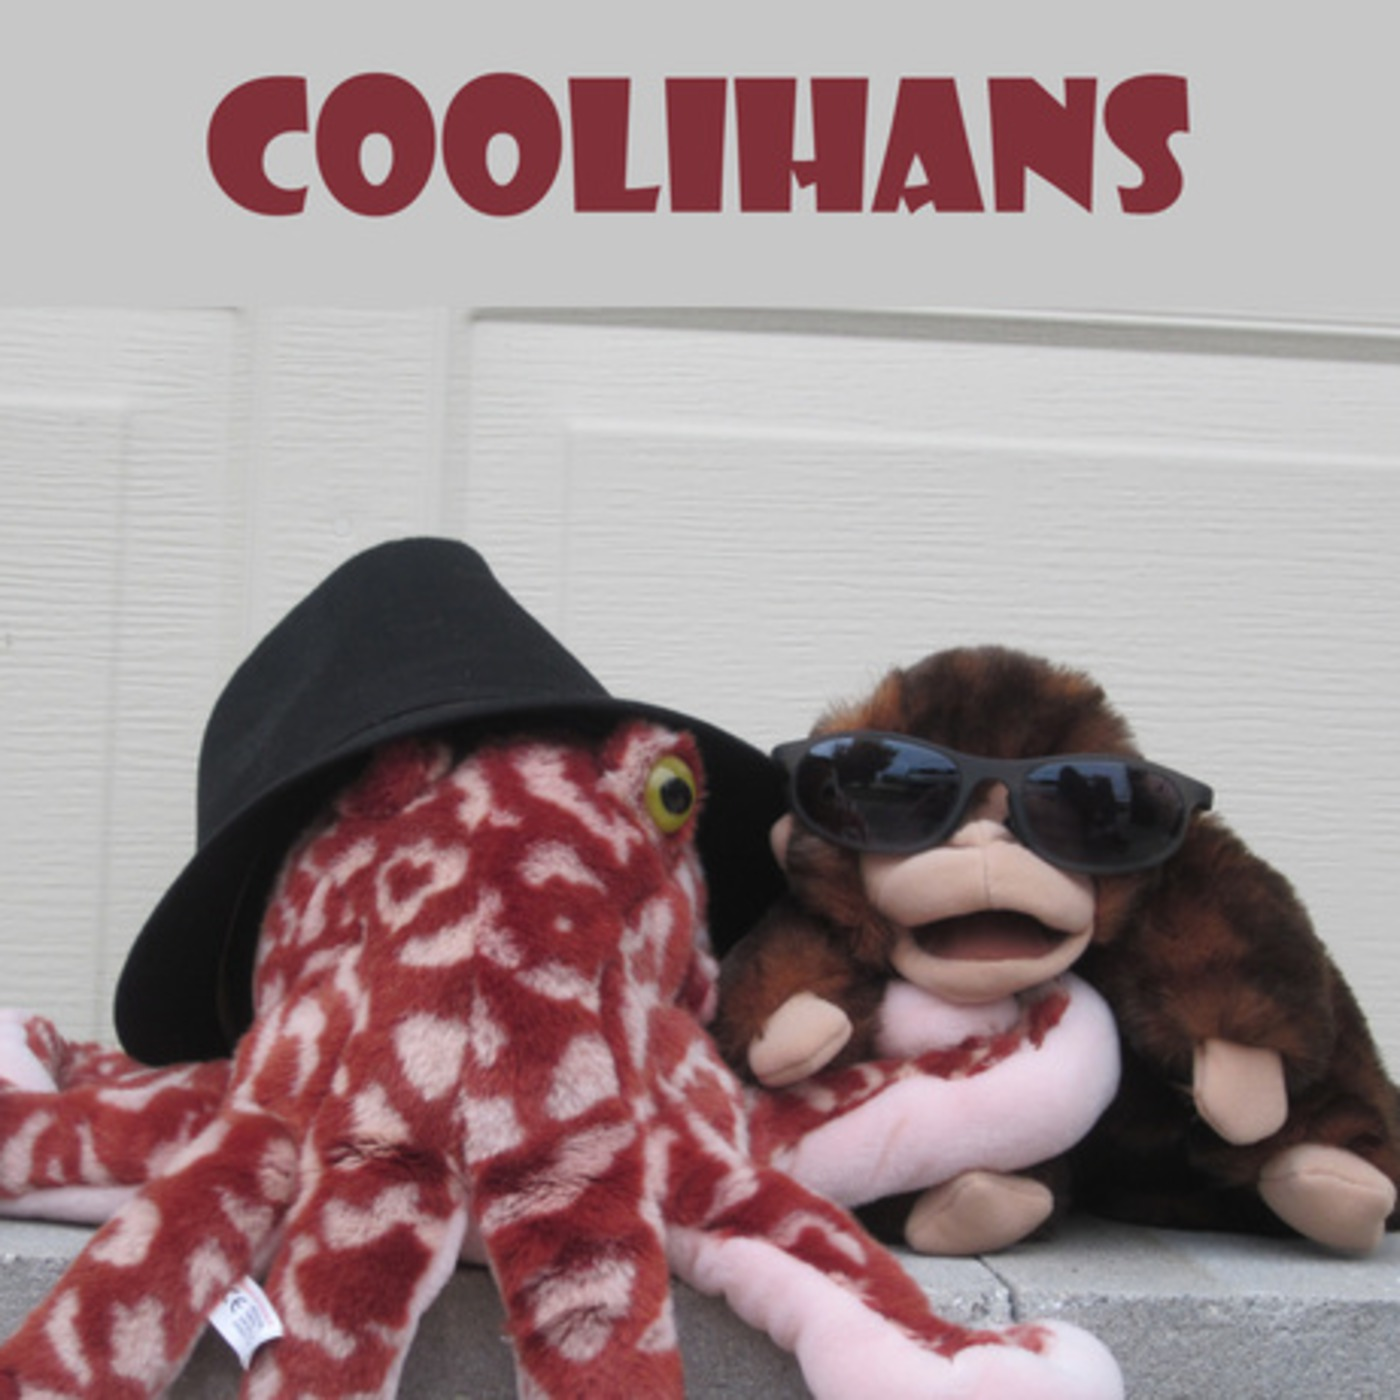 Coolihans' Podcast